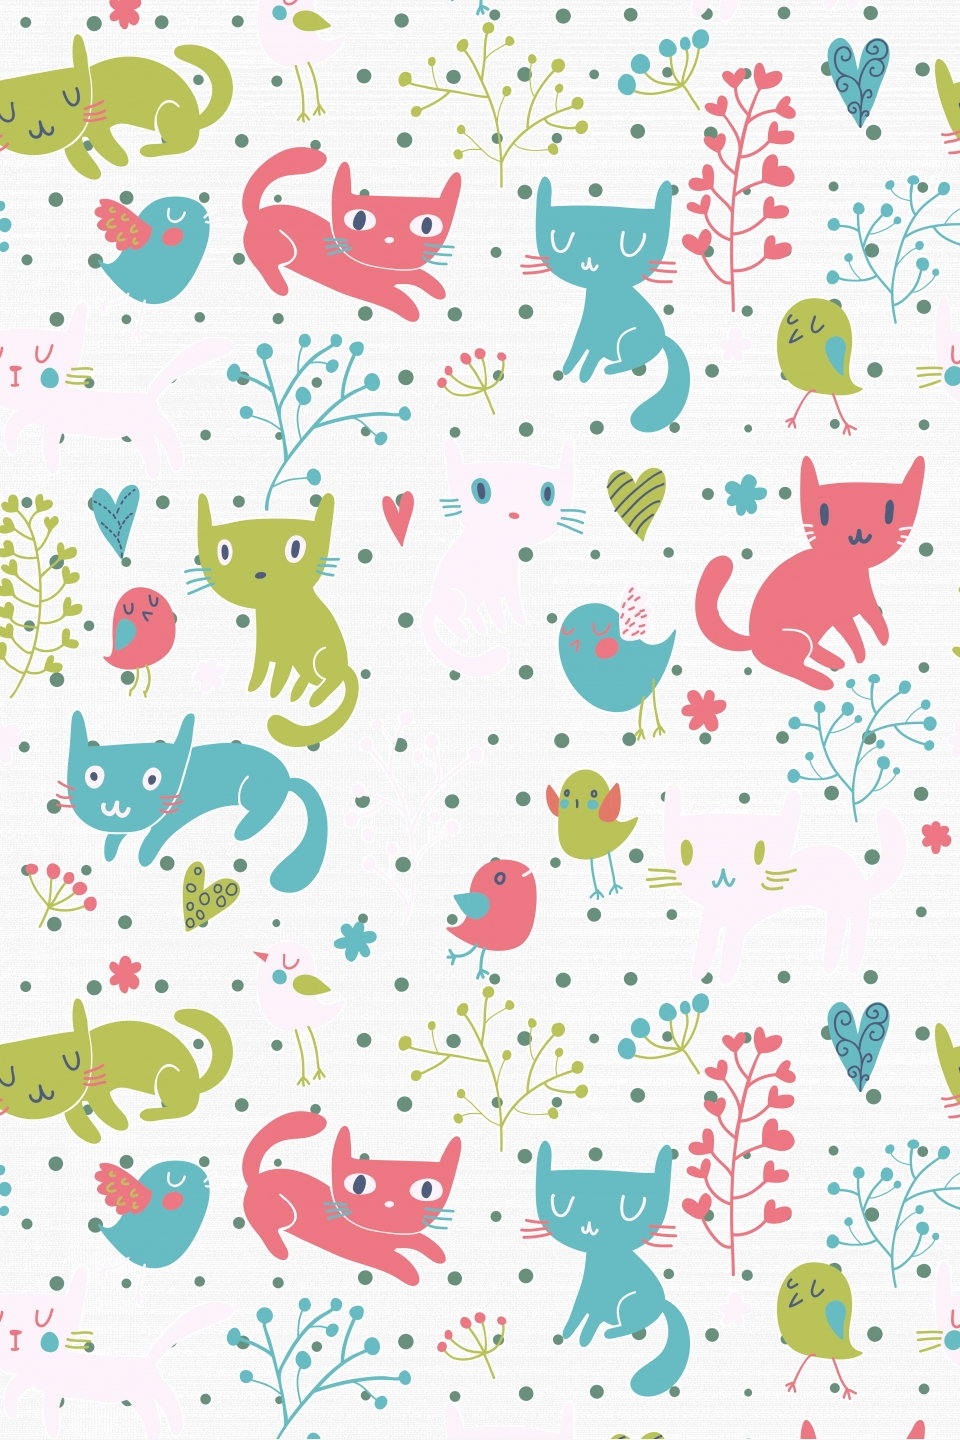 Hand Drawn Cute Cartoon Cat Tile Wallpaper Print Ads Hand Drawn Background Cute Cartoon Cat Background Image For Free Download